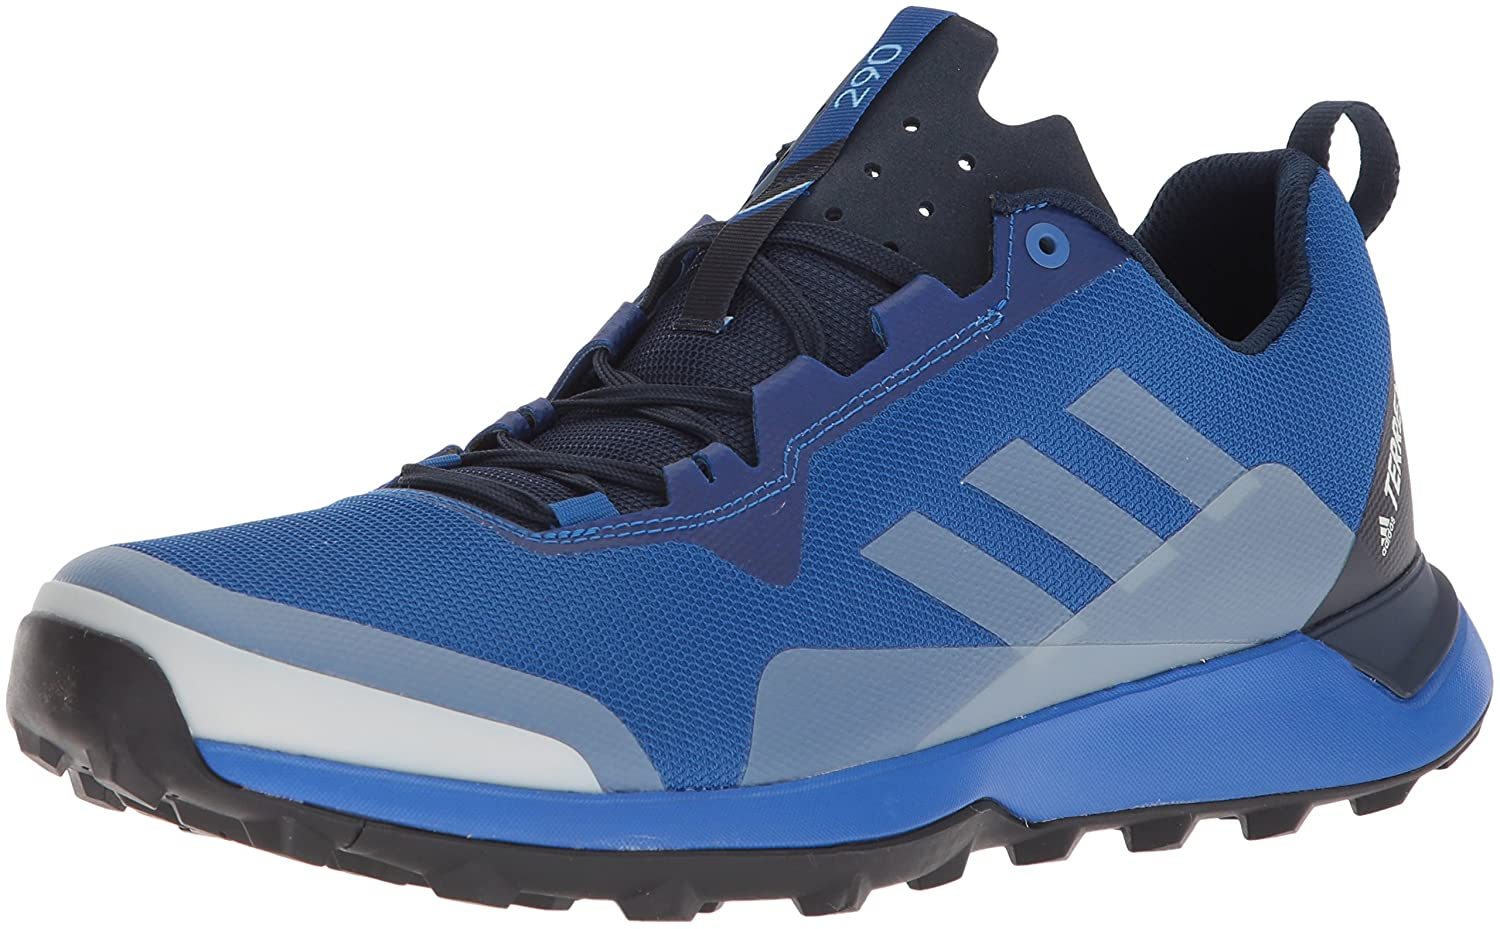 Adidas outdoor Men's Terrex CMTK Walking Schuhe, Blau Beauty Grau One Col. Navy, 10 D US